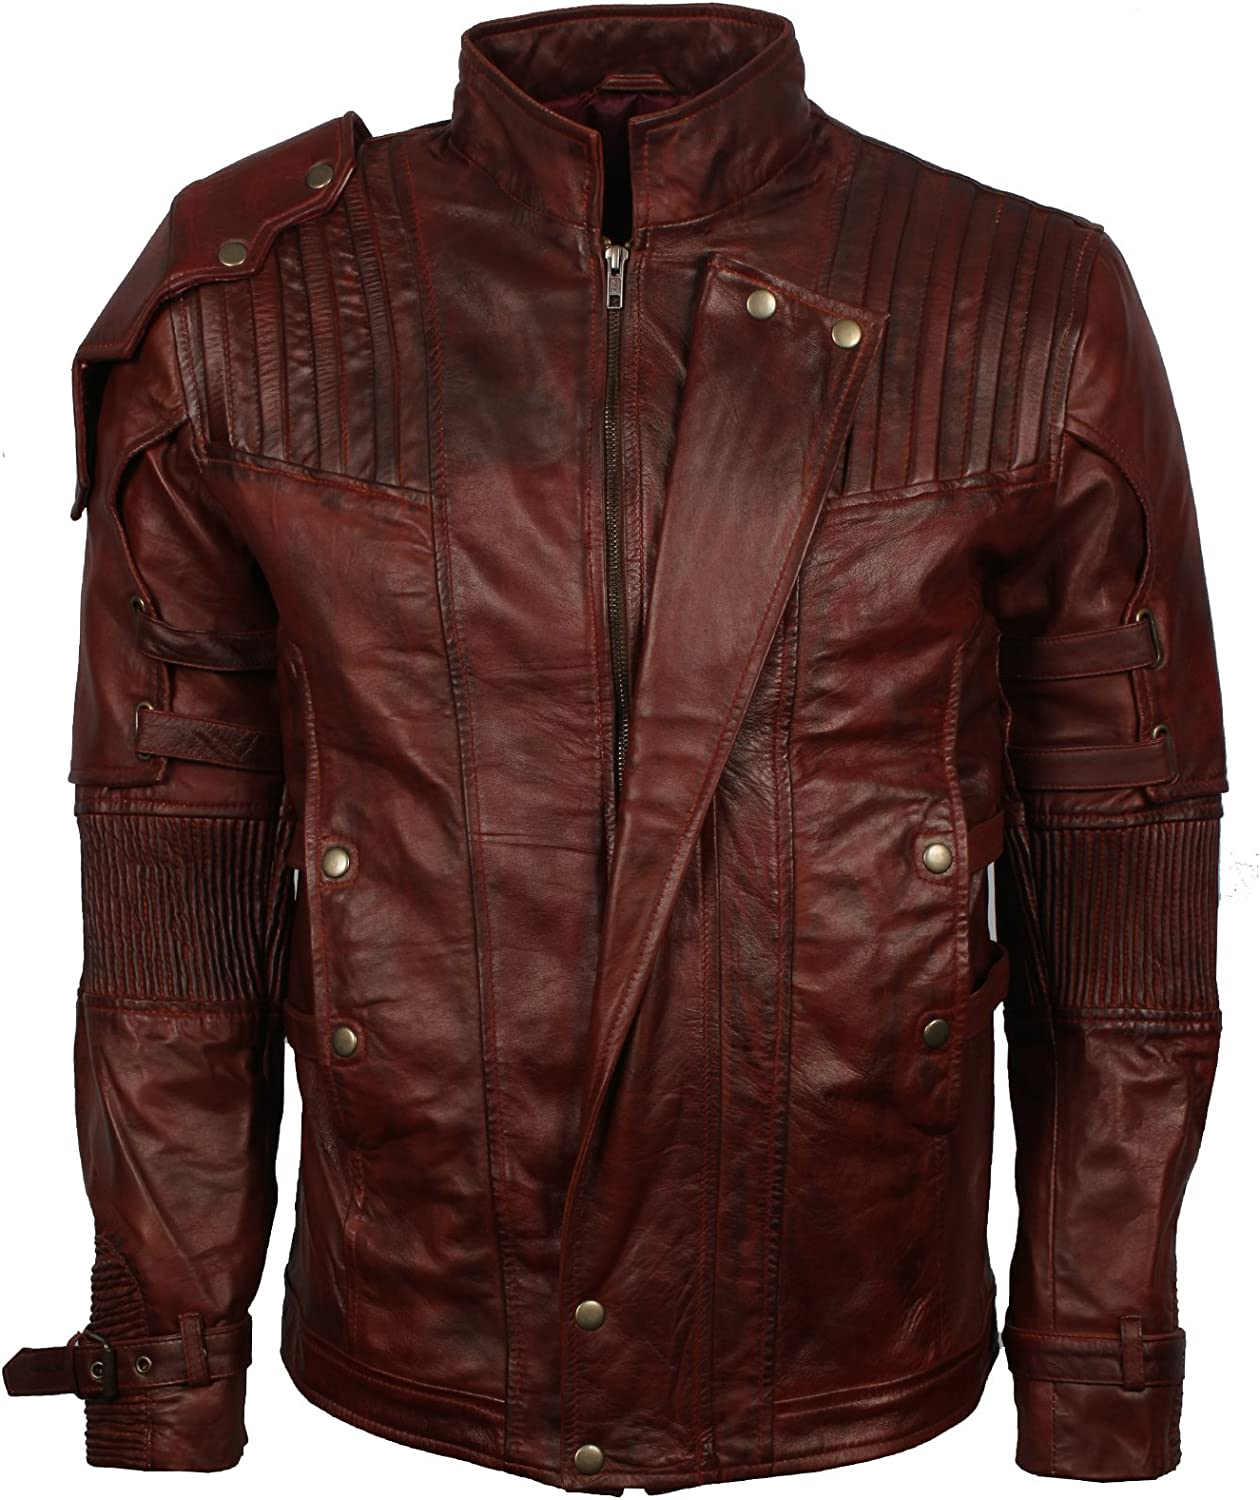 Biker Jackets Costumes Brown Waxed Mens Vintage Quilted Style Jacket